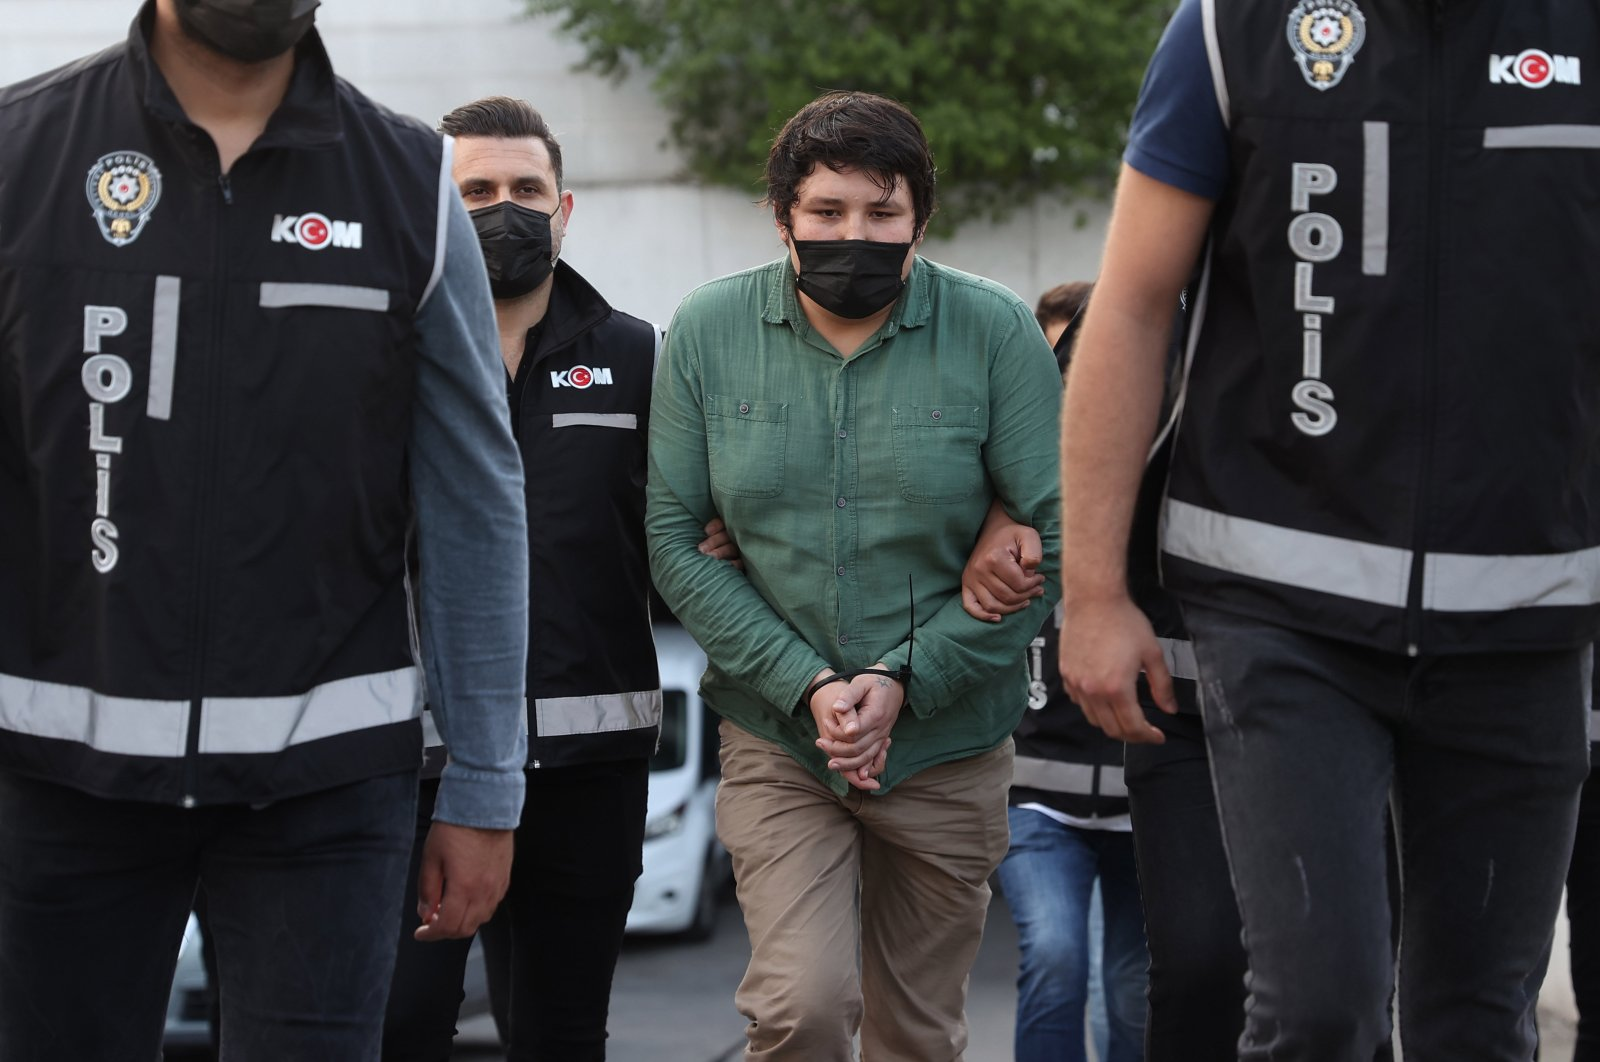 Police escort Mehmet Aydın, brother of Fatih Aydın, to the courthouse, in Istanbul, Turkey, July 7, 2021. (AA PHOTO)